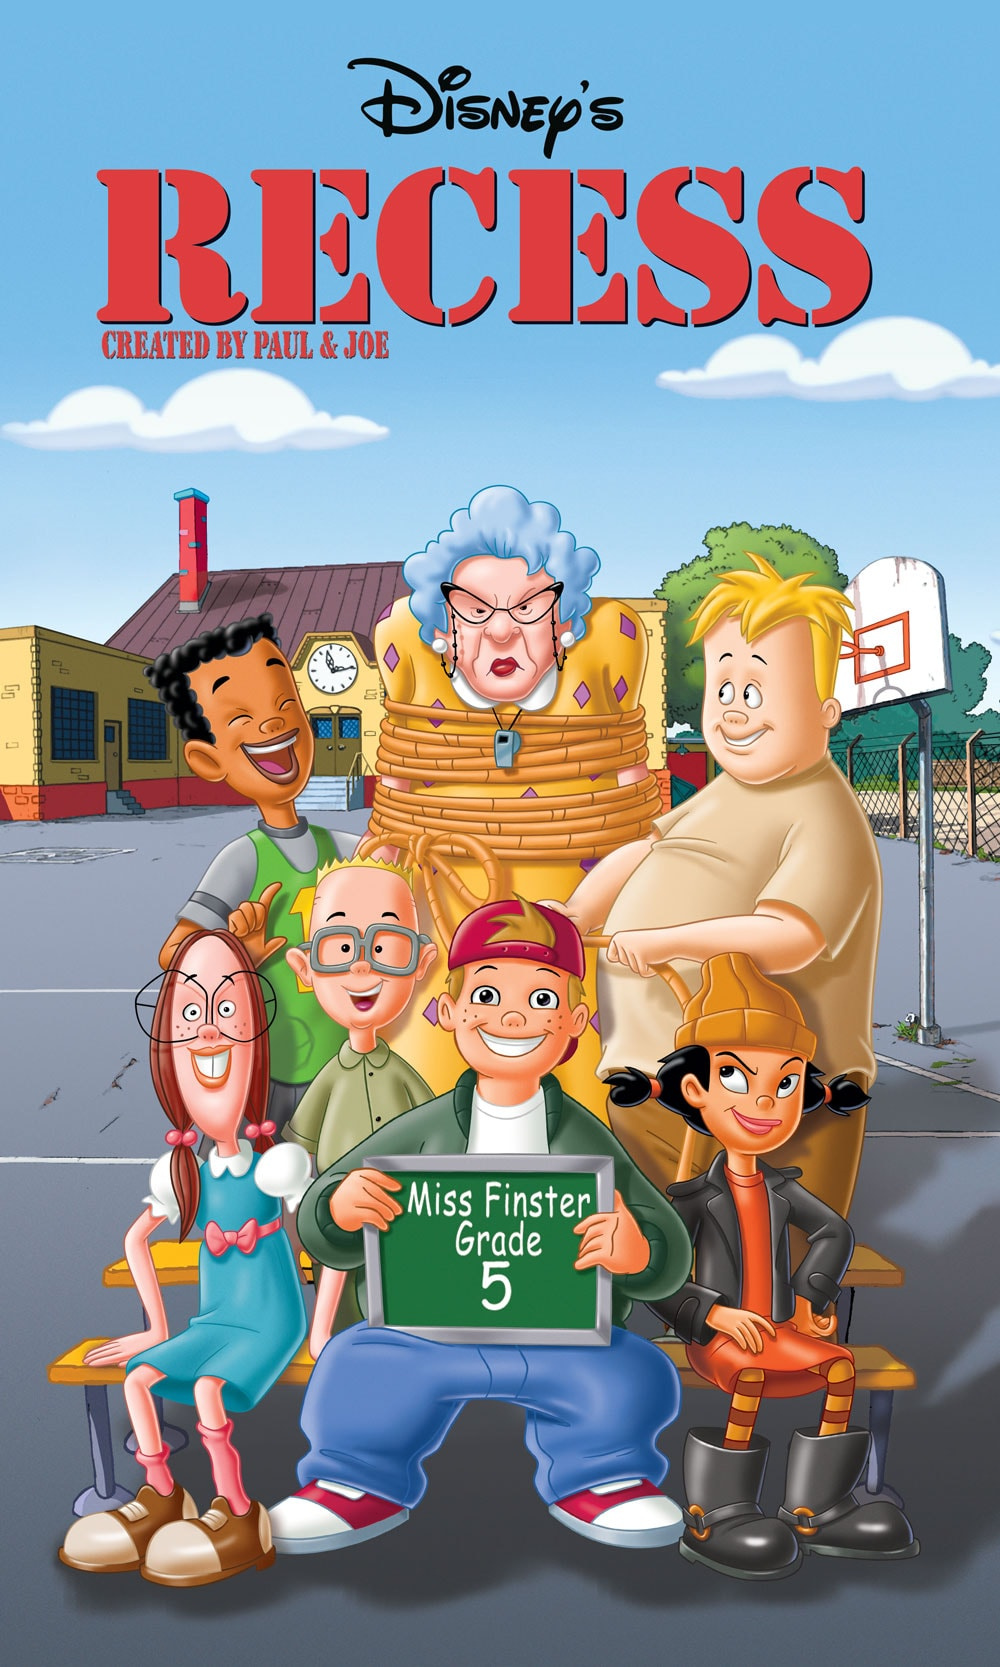 Disney recess images 56